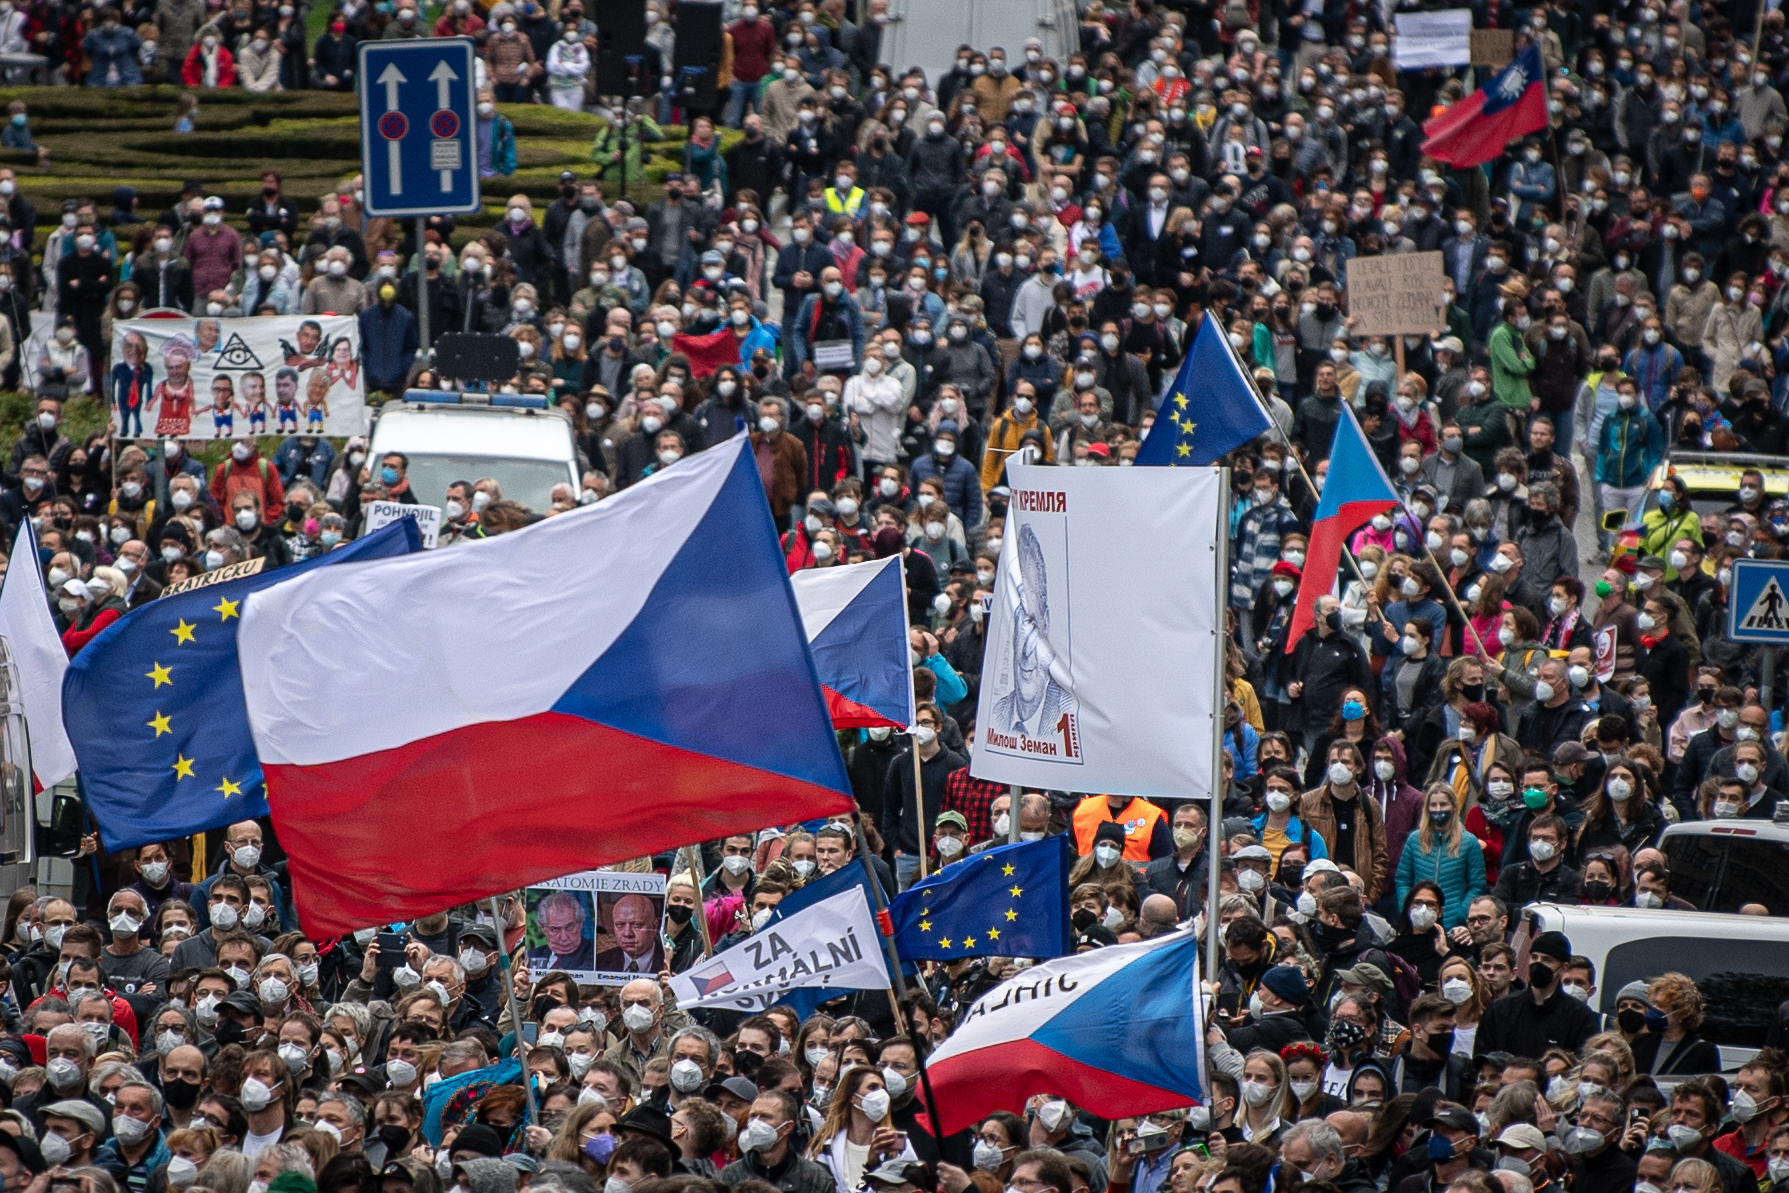 Protests in Prague following the Czech president's comments. Photo: Lukas Kabon/Anadolu Agency via Getty Images